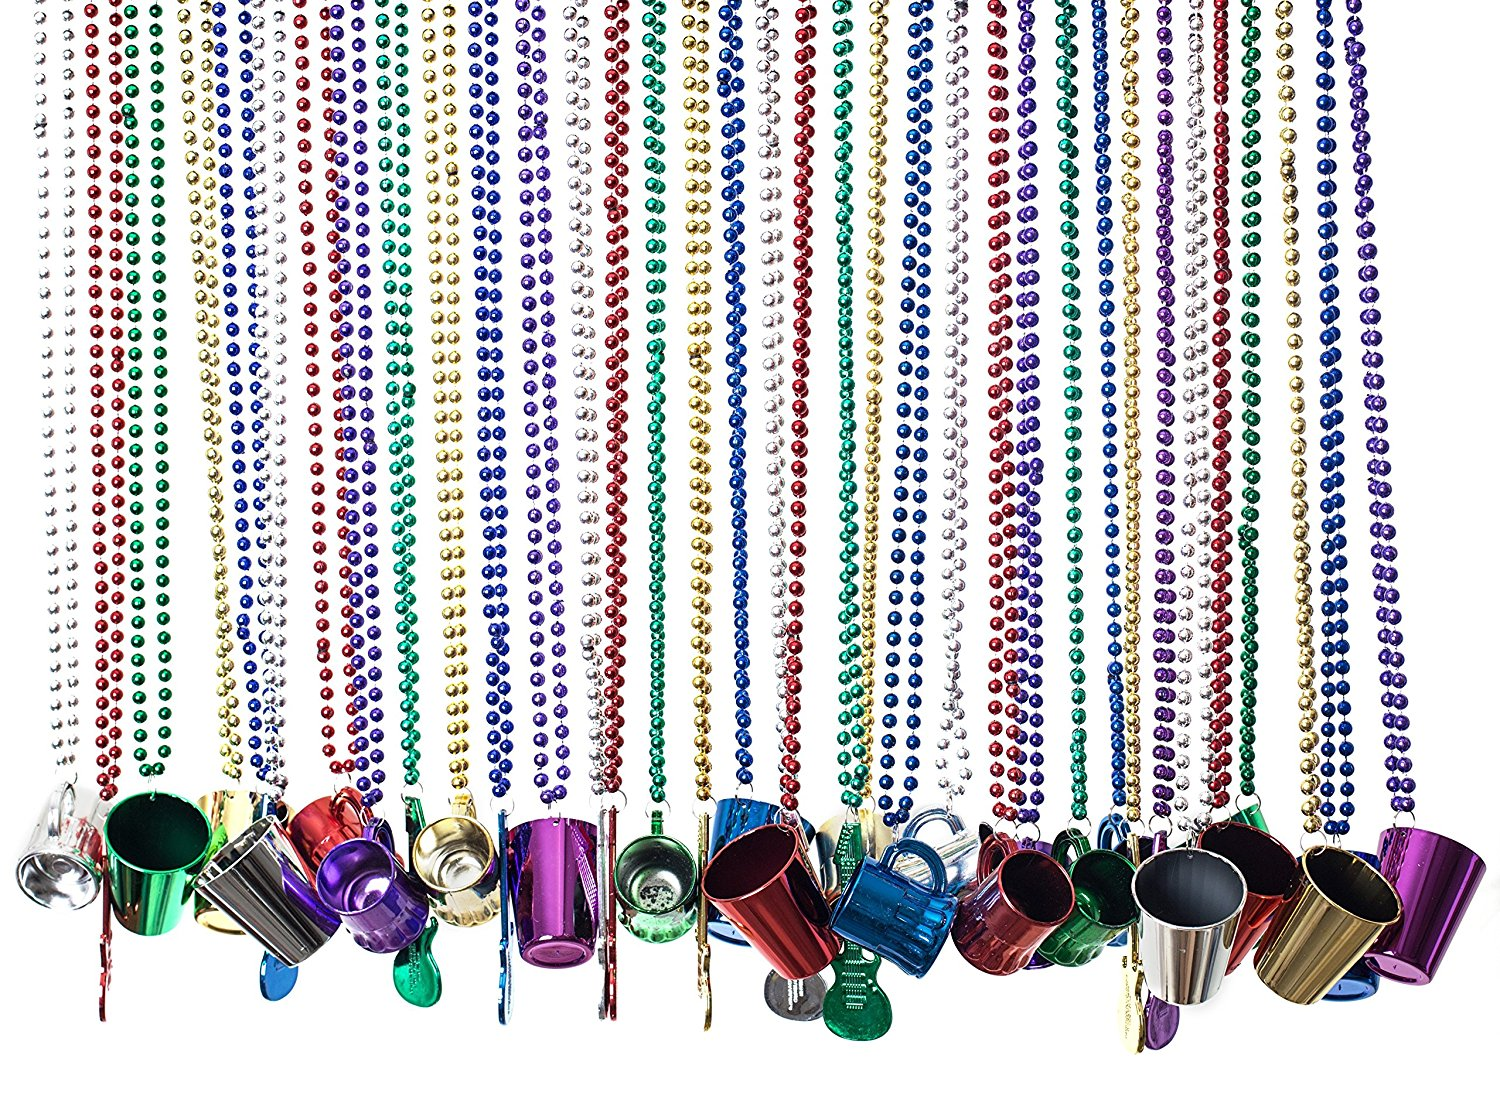 Bulk Beads; Mardi Gras Beads Necklaces With Super Sized Charms; 36 Bulk Pack, Fun Party Beaded Necklaces